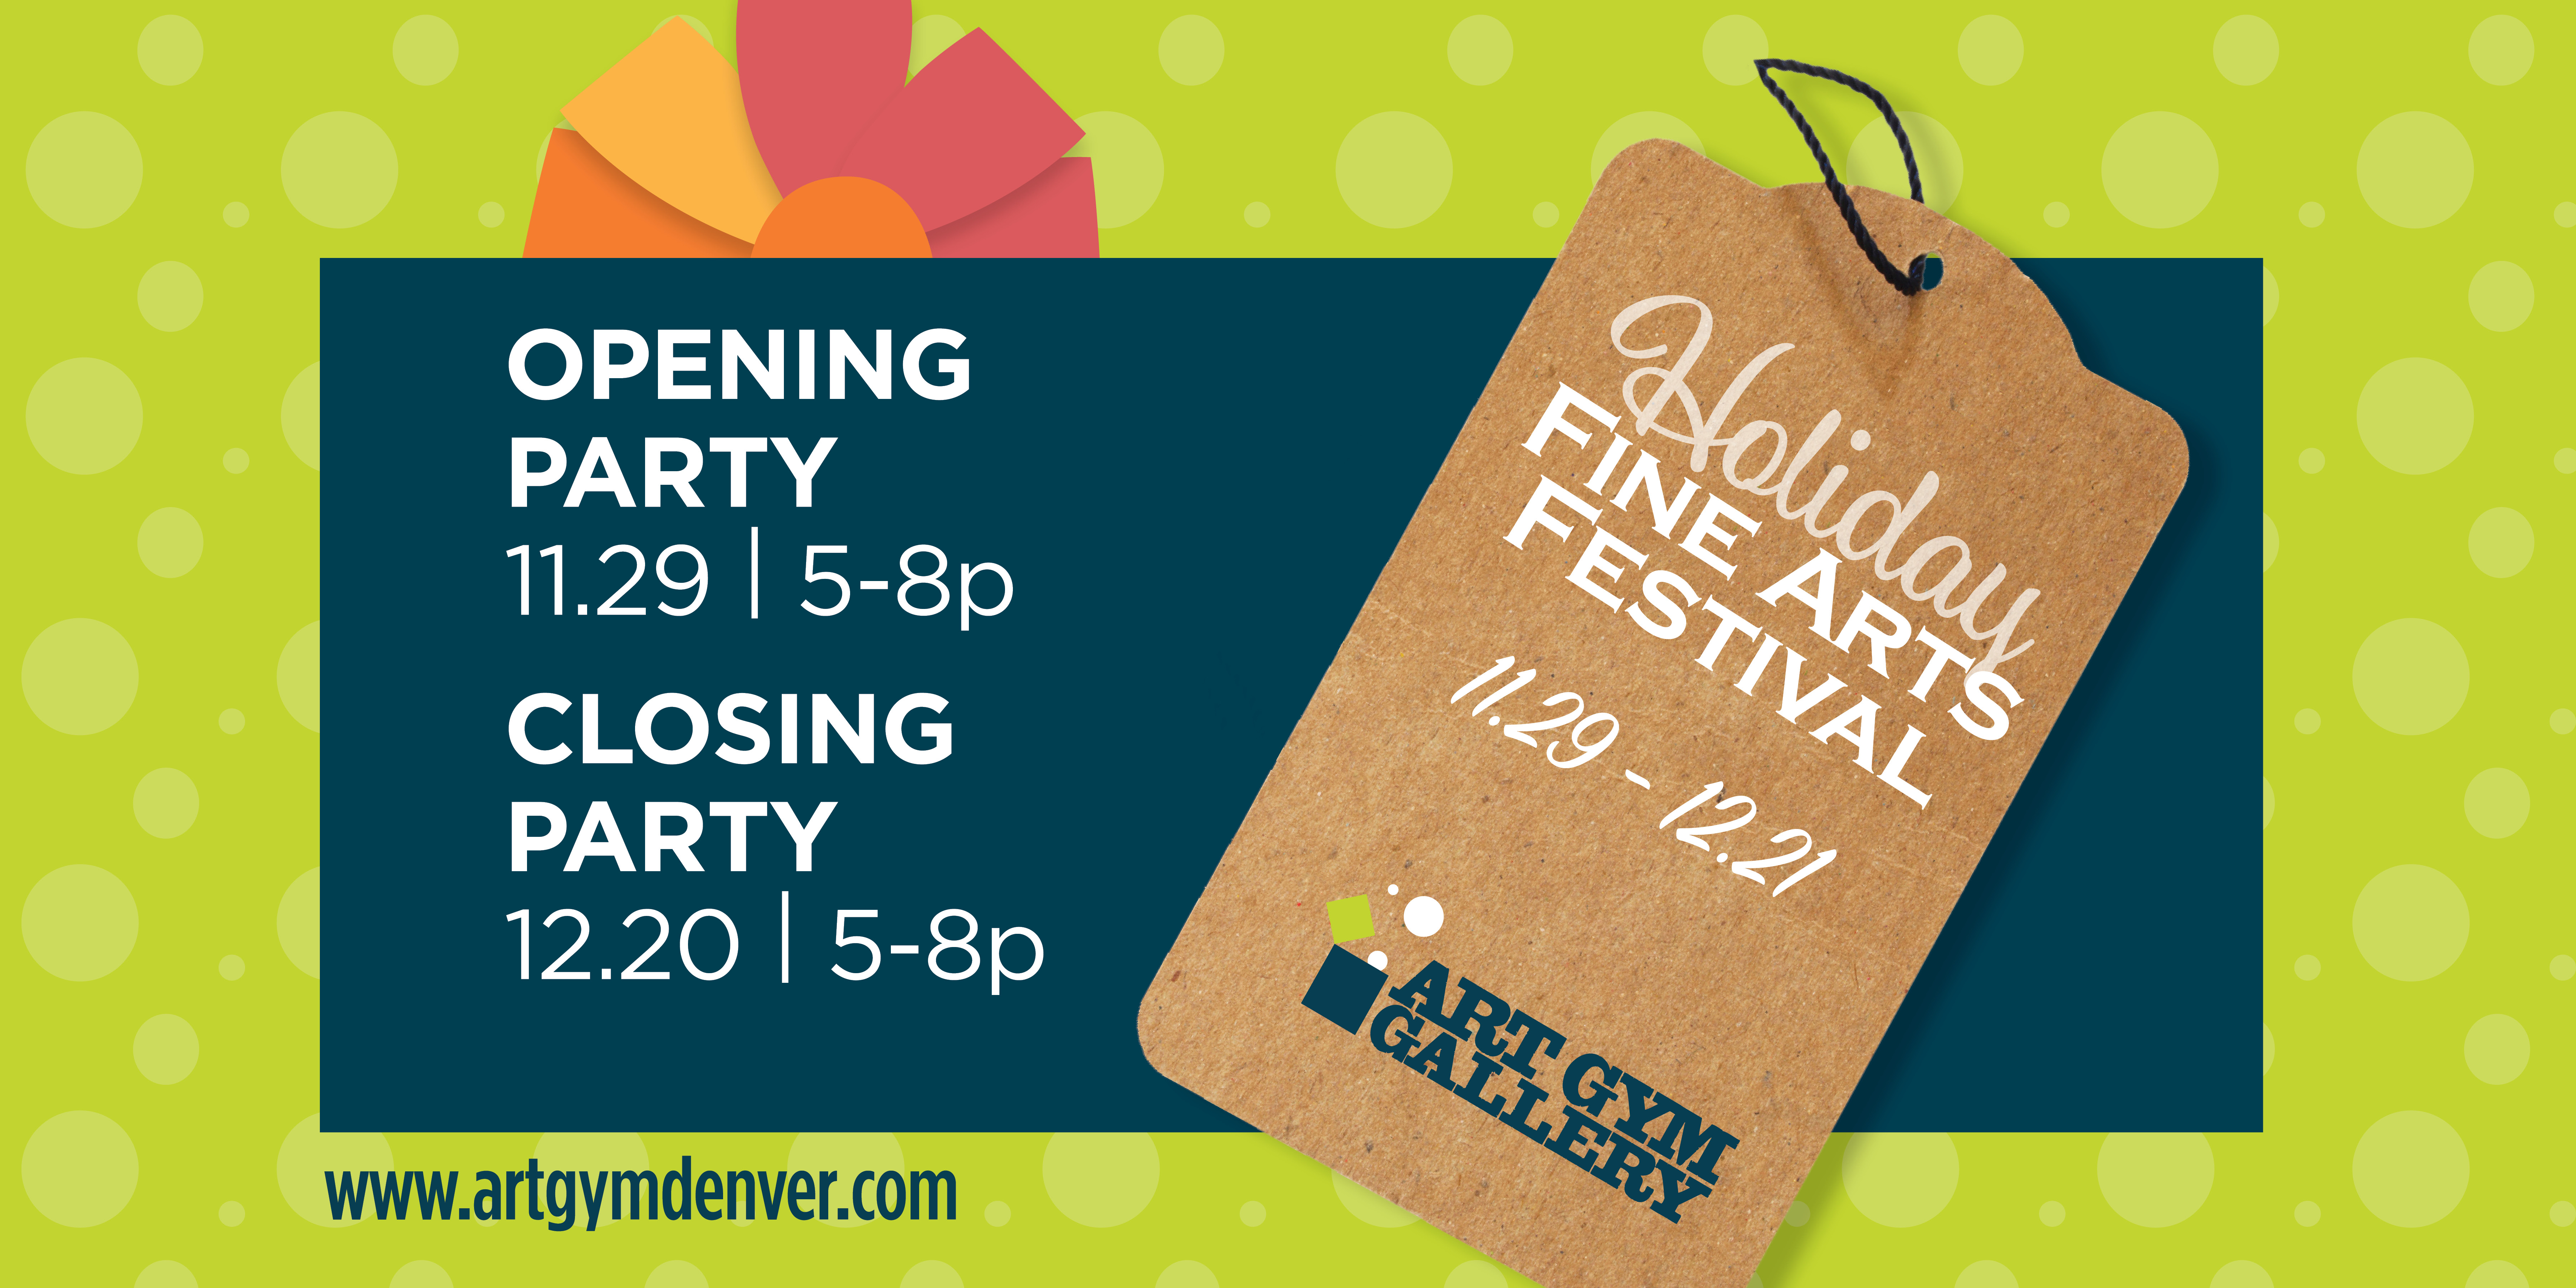 Holiday Fine Arts Festival November 29th thru December 21st. Opening party November 29th from 5 to 8pm. Closing party December 20th from 5 to 8pm